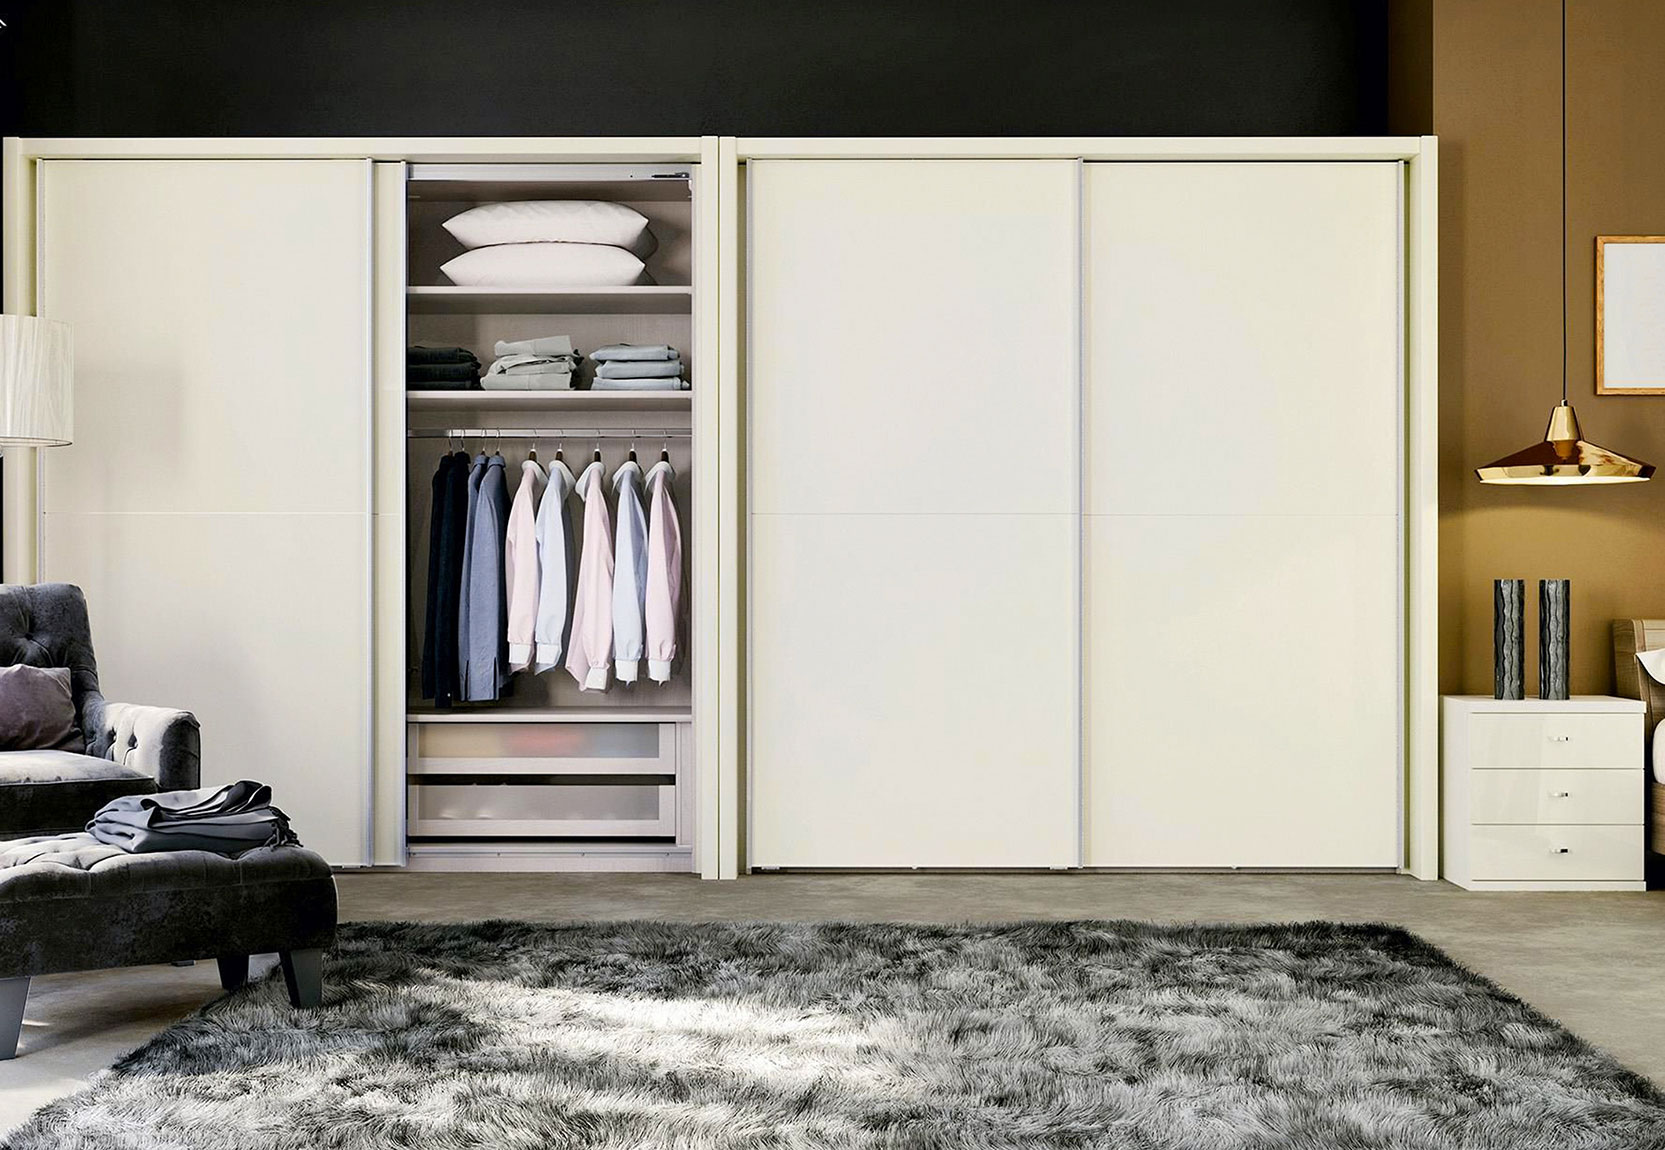 Laminate Wardrobe Design – The Best Choice for Longer Term